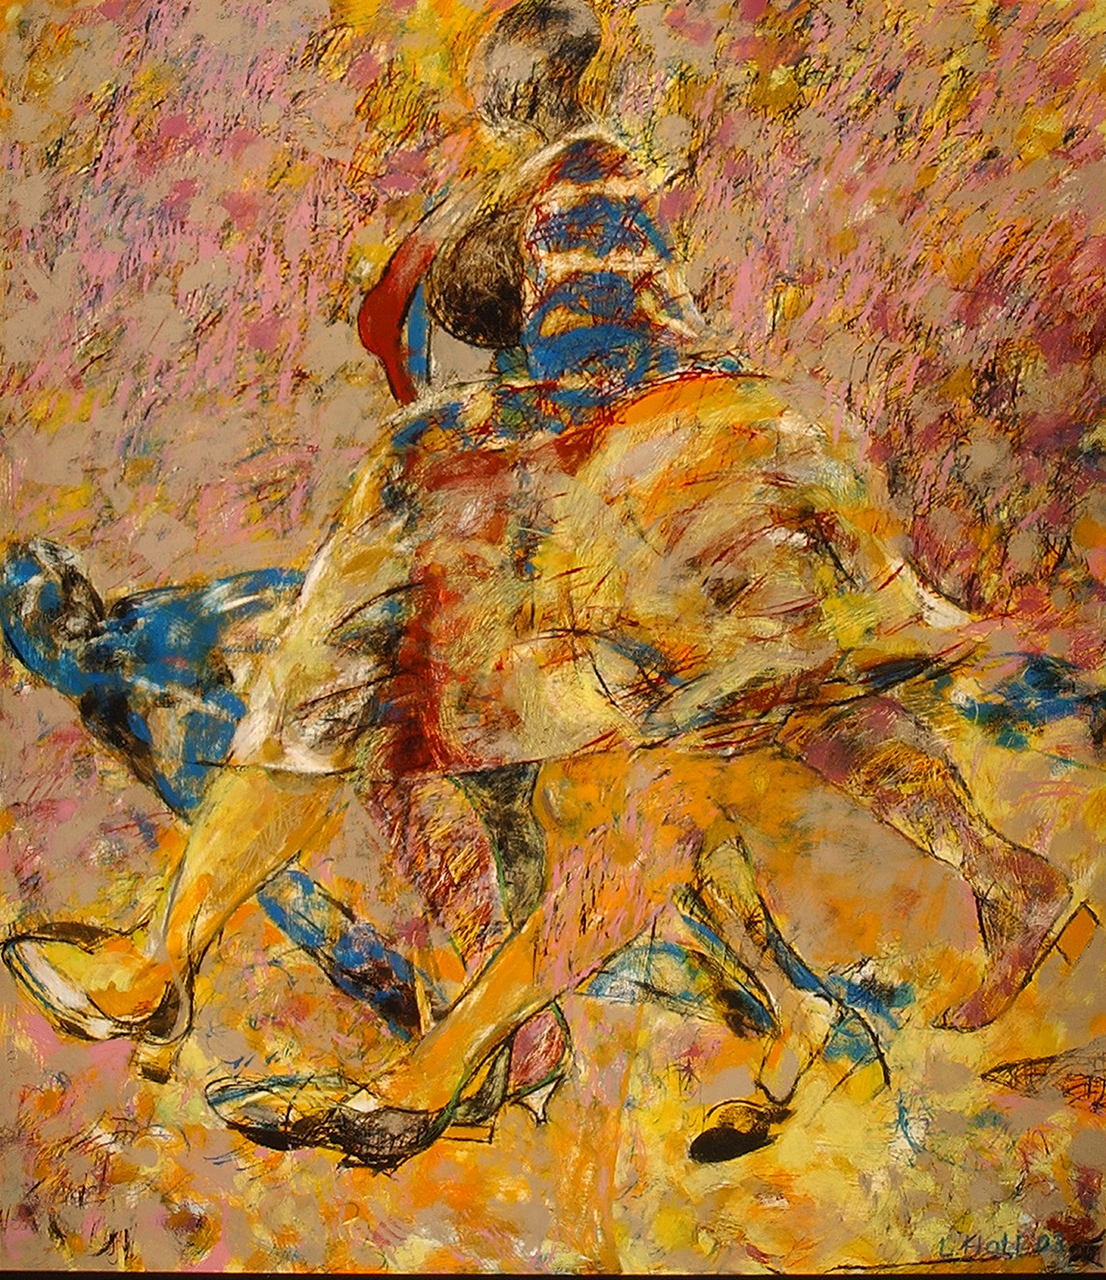 Louise-Hall-Walking-Woman-Series-II,-2003-oil-on-board-152-cm-x-134-cm-web